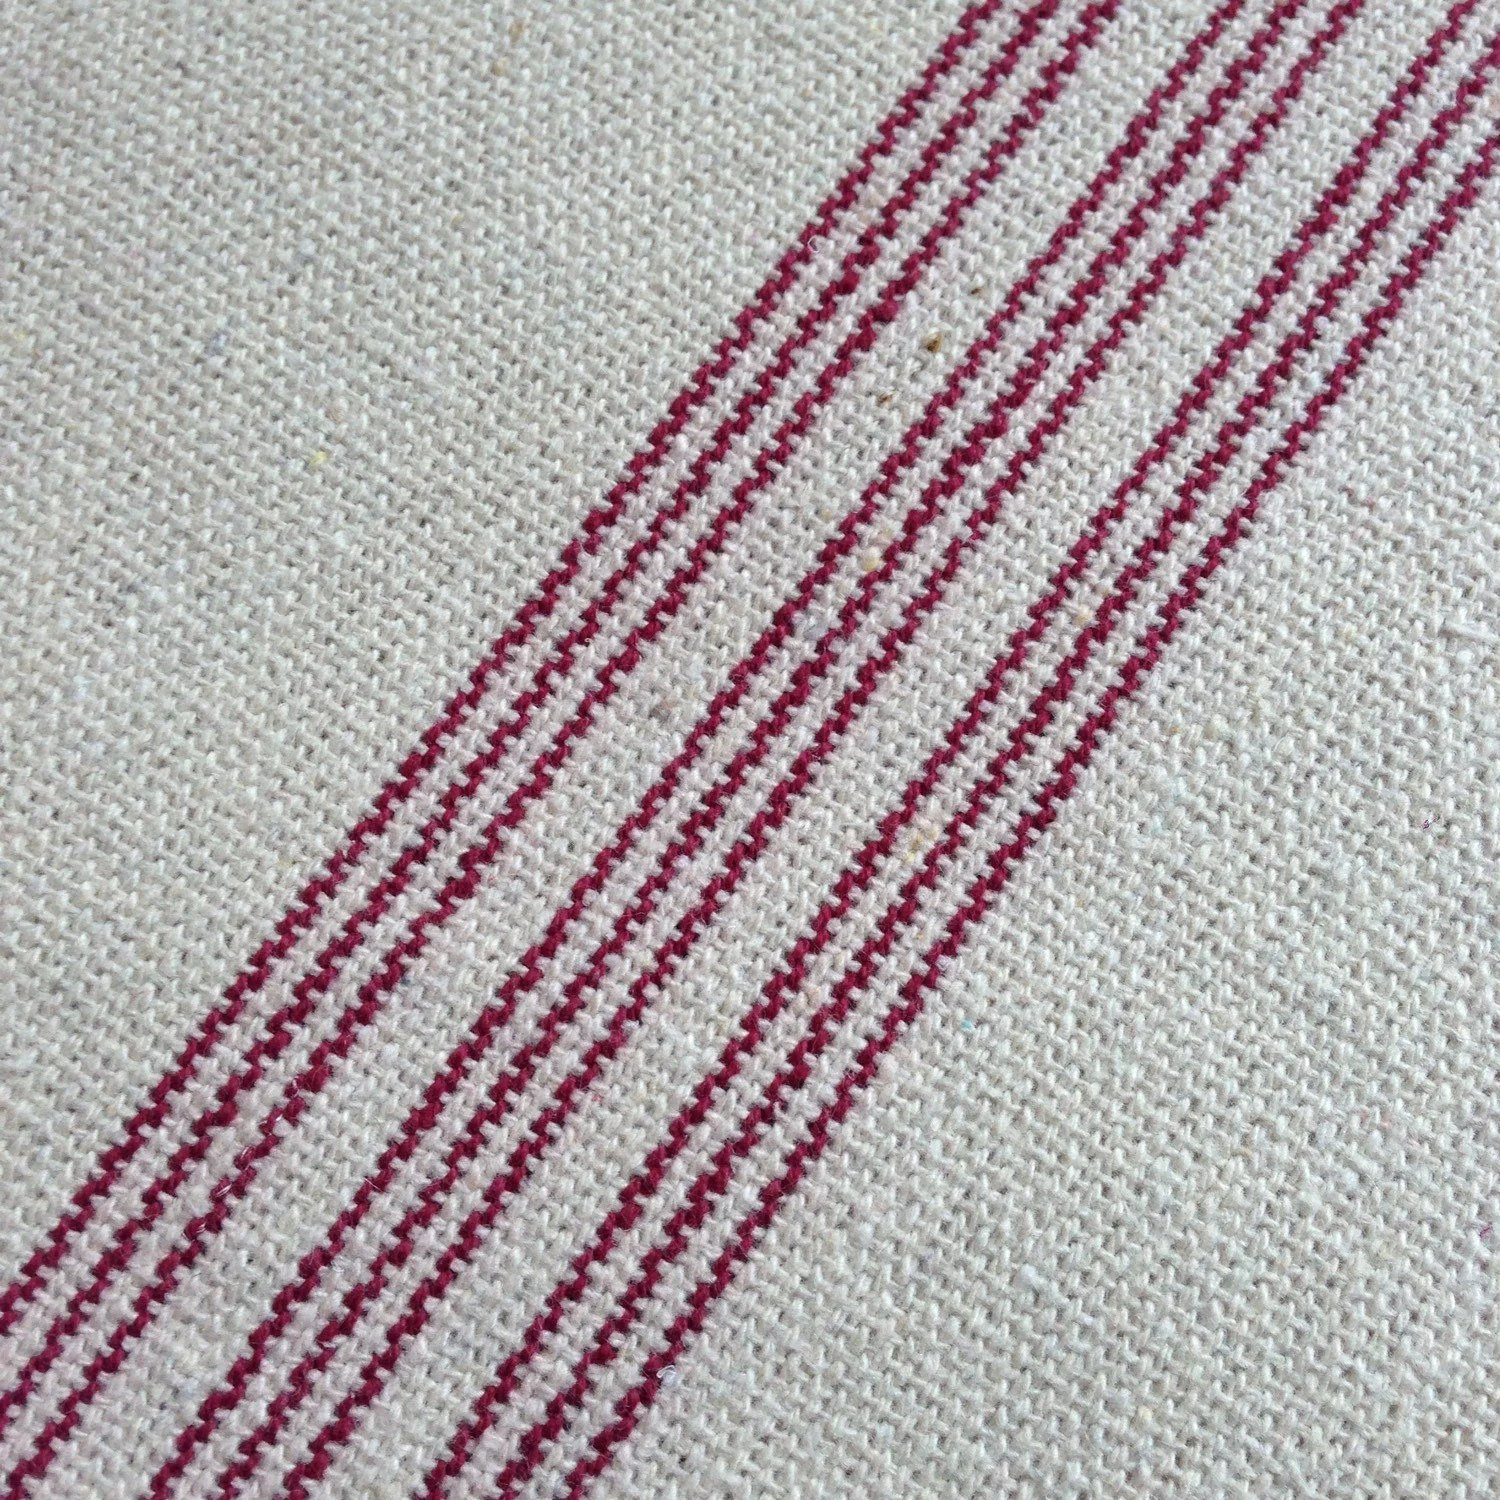 Flour Sack Fabric By The Yard Grain Sack Fabric Red Stripe Vintage Inspired Sold By The Yard